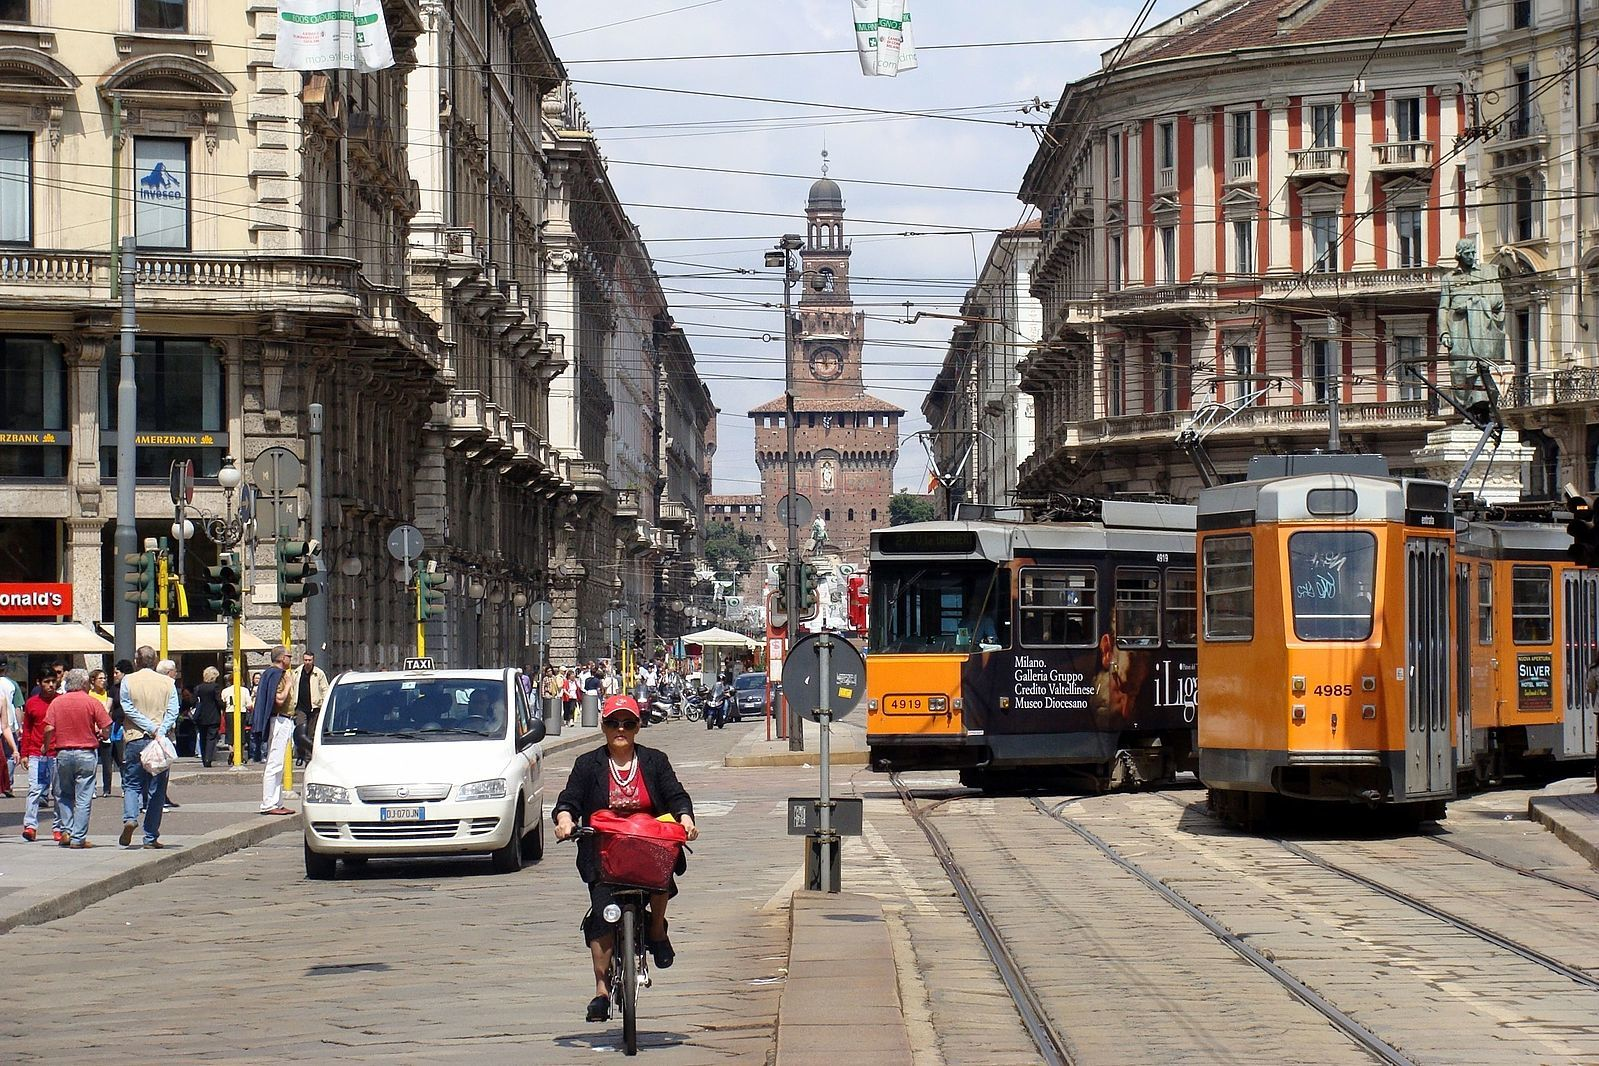 Public transportation in Milan